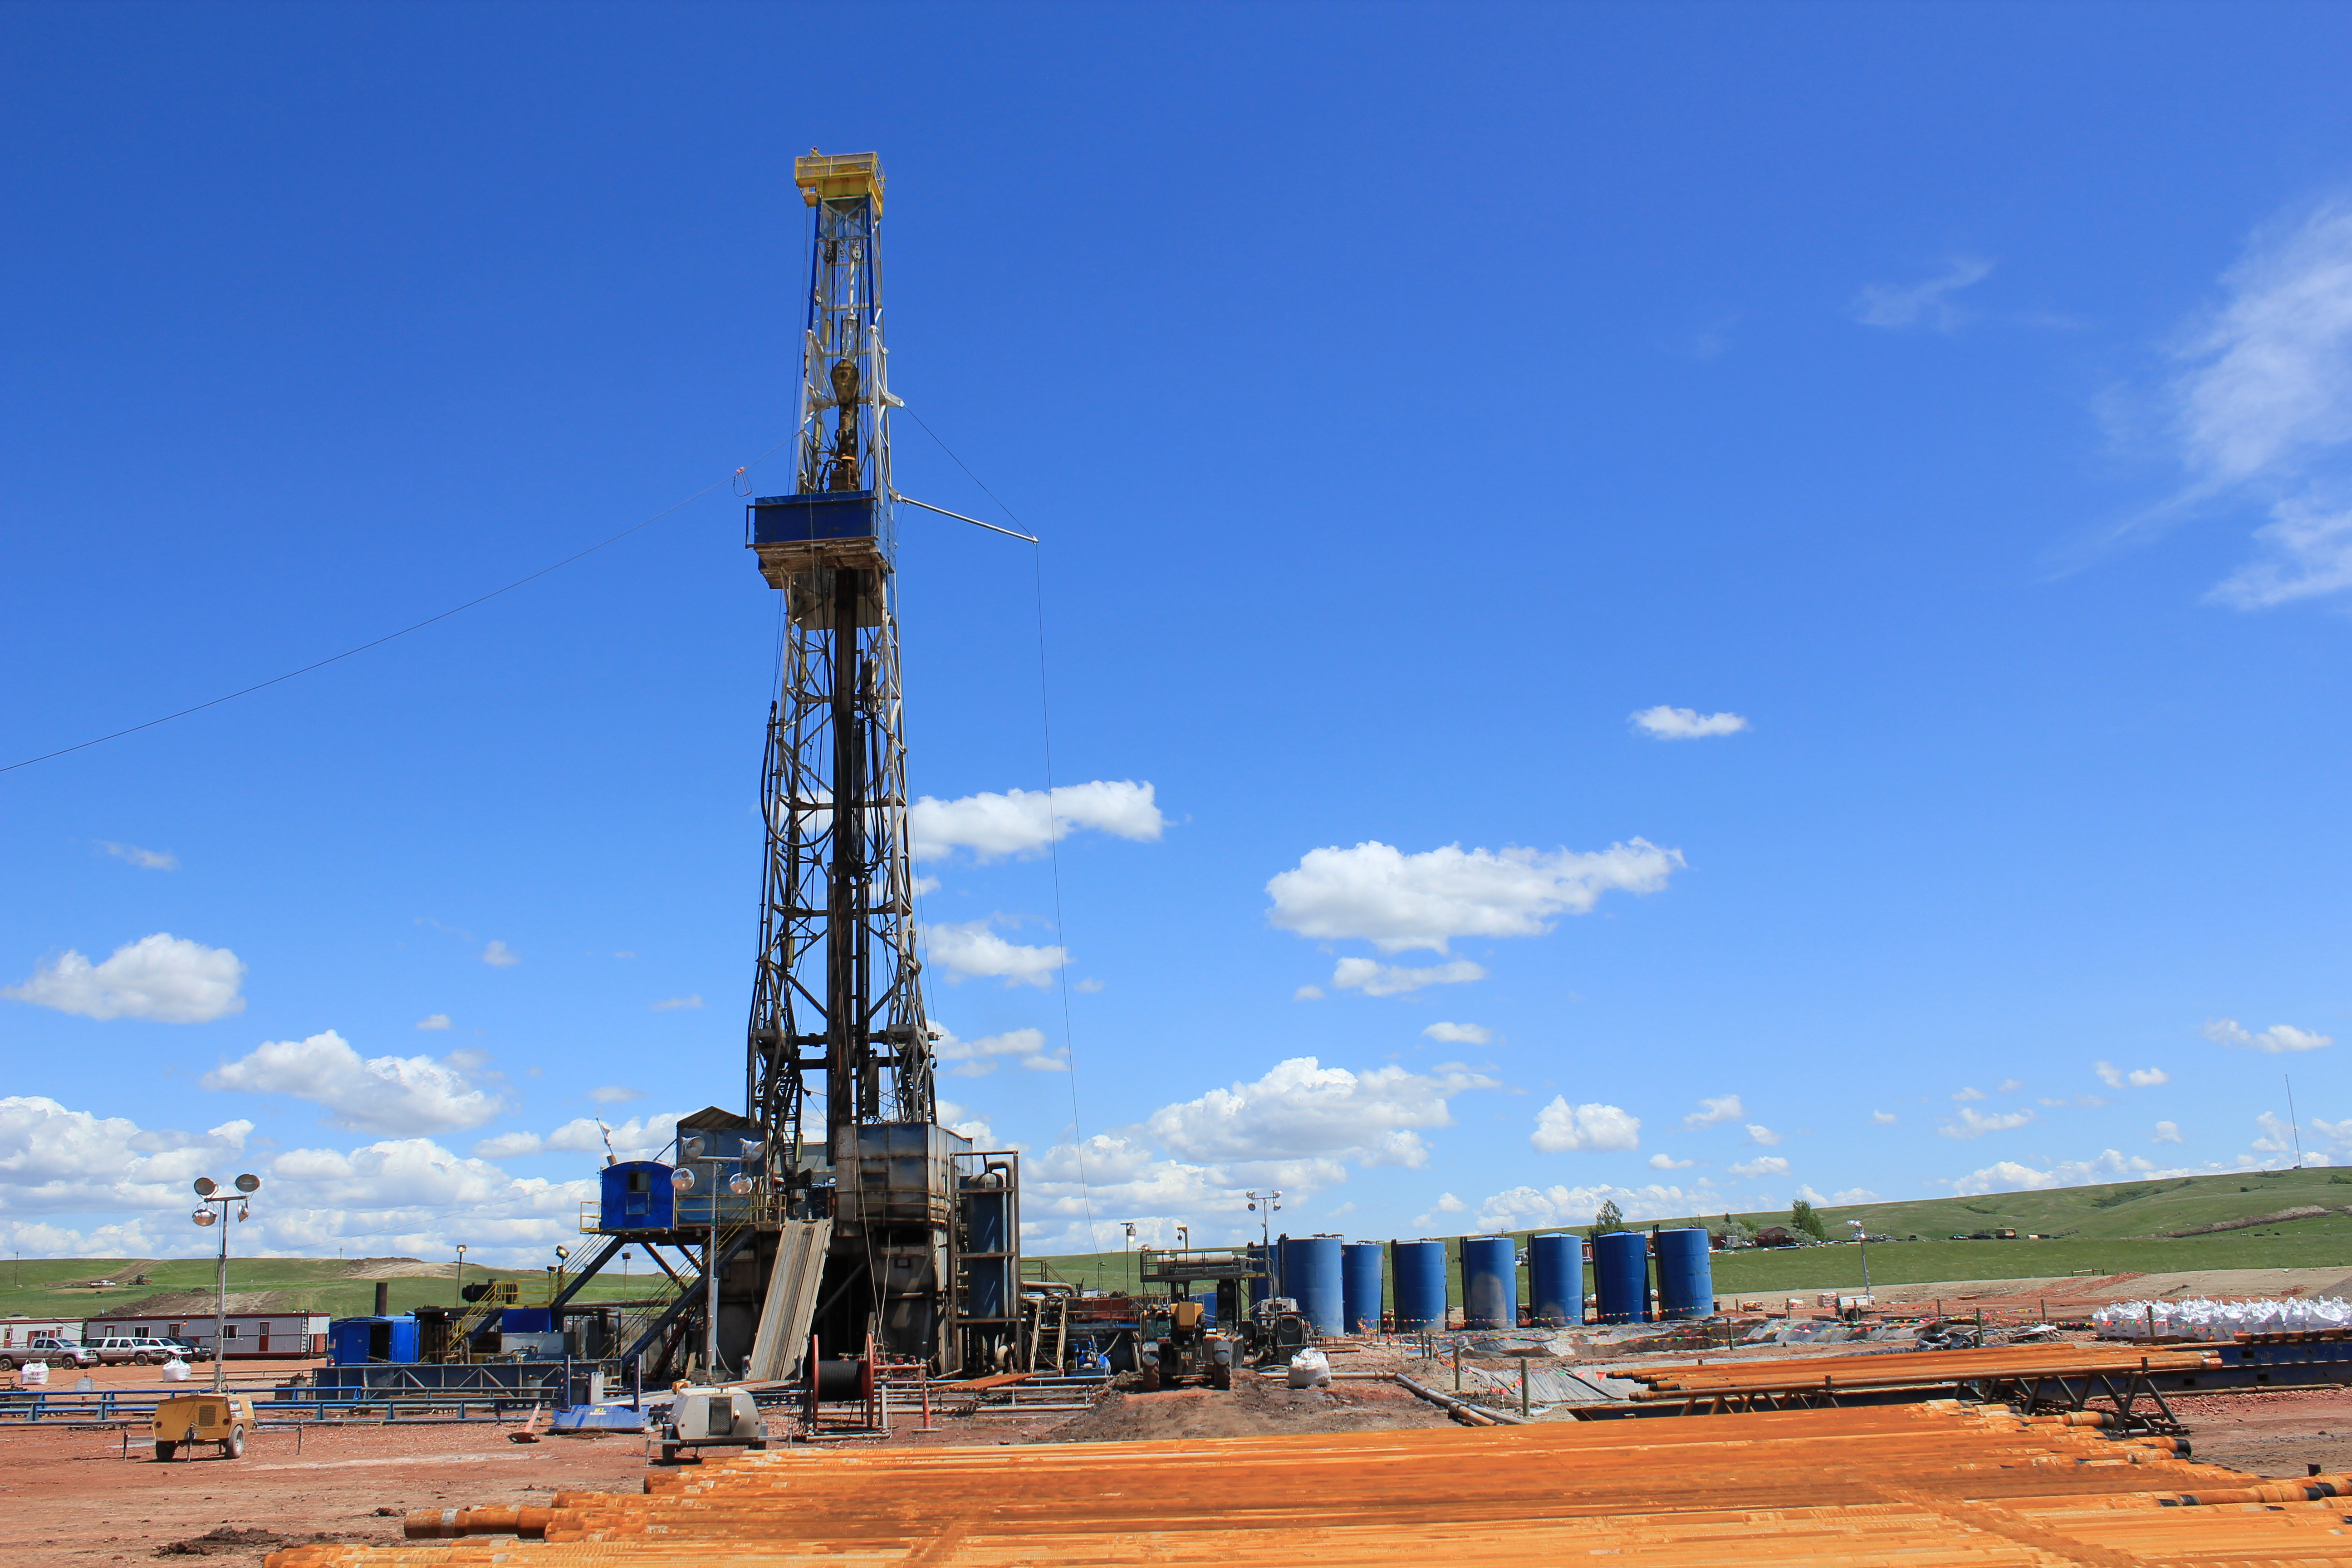 EPA Approved Use of Forever Chemicals in Fracking Despite Knowledge of Health Risks